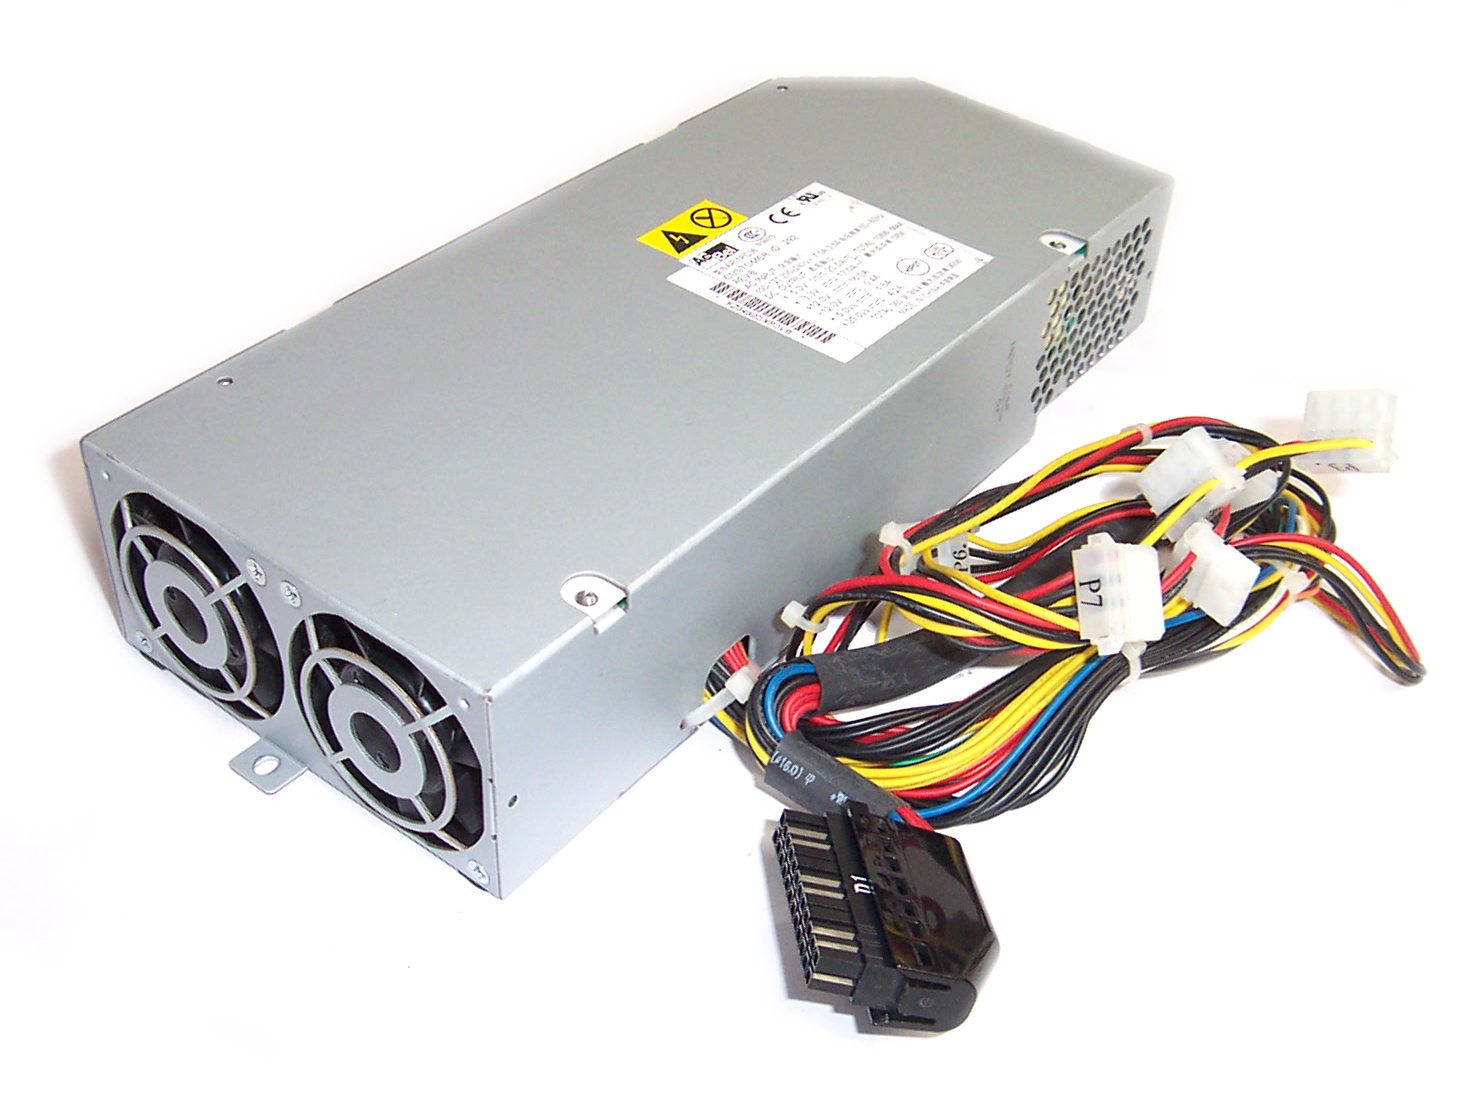 Apple PowerMac G4 MDD Power Supply - API1PC36  Enlarged Preview